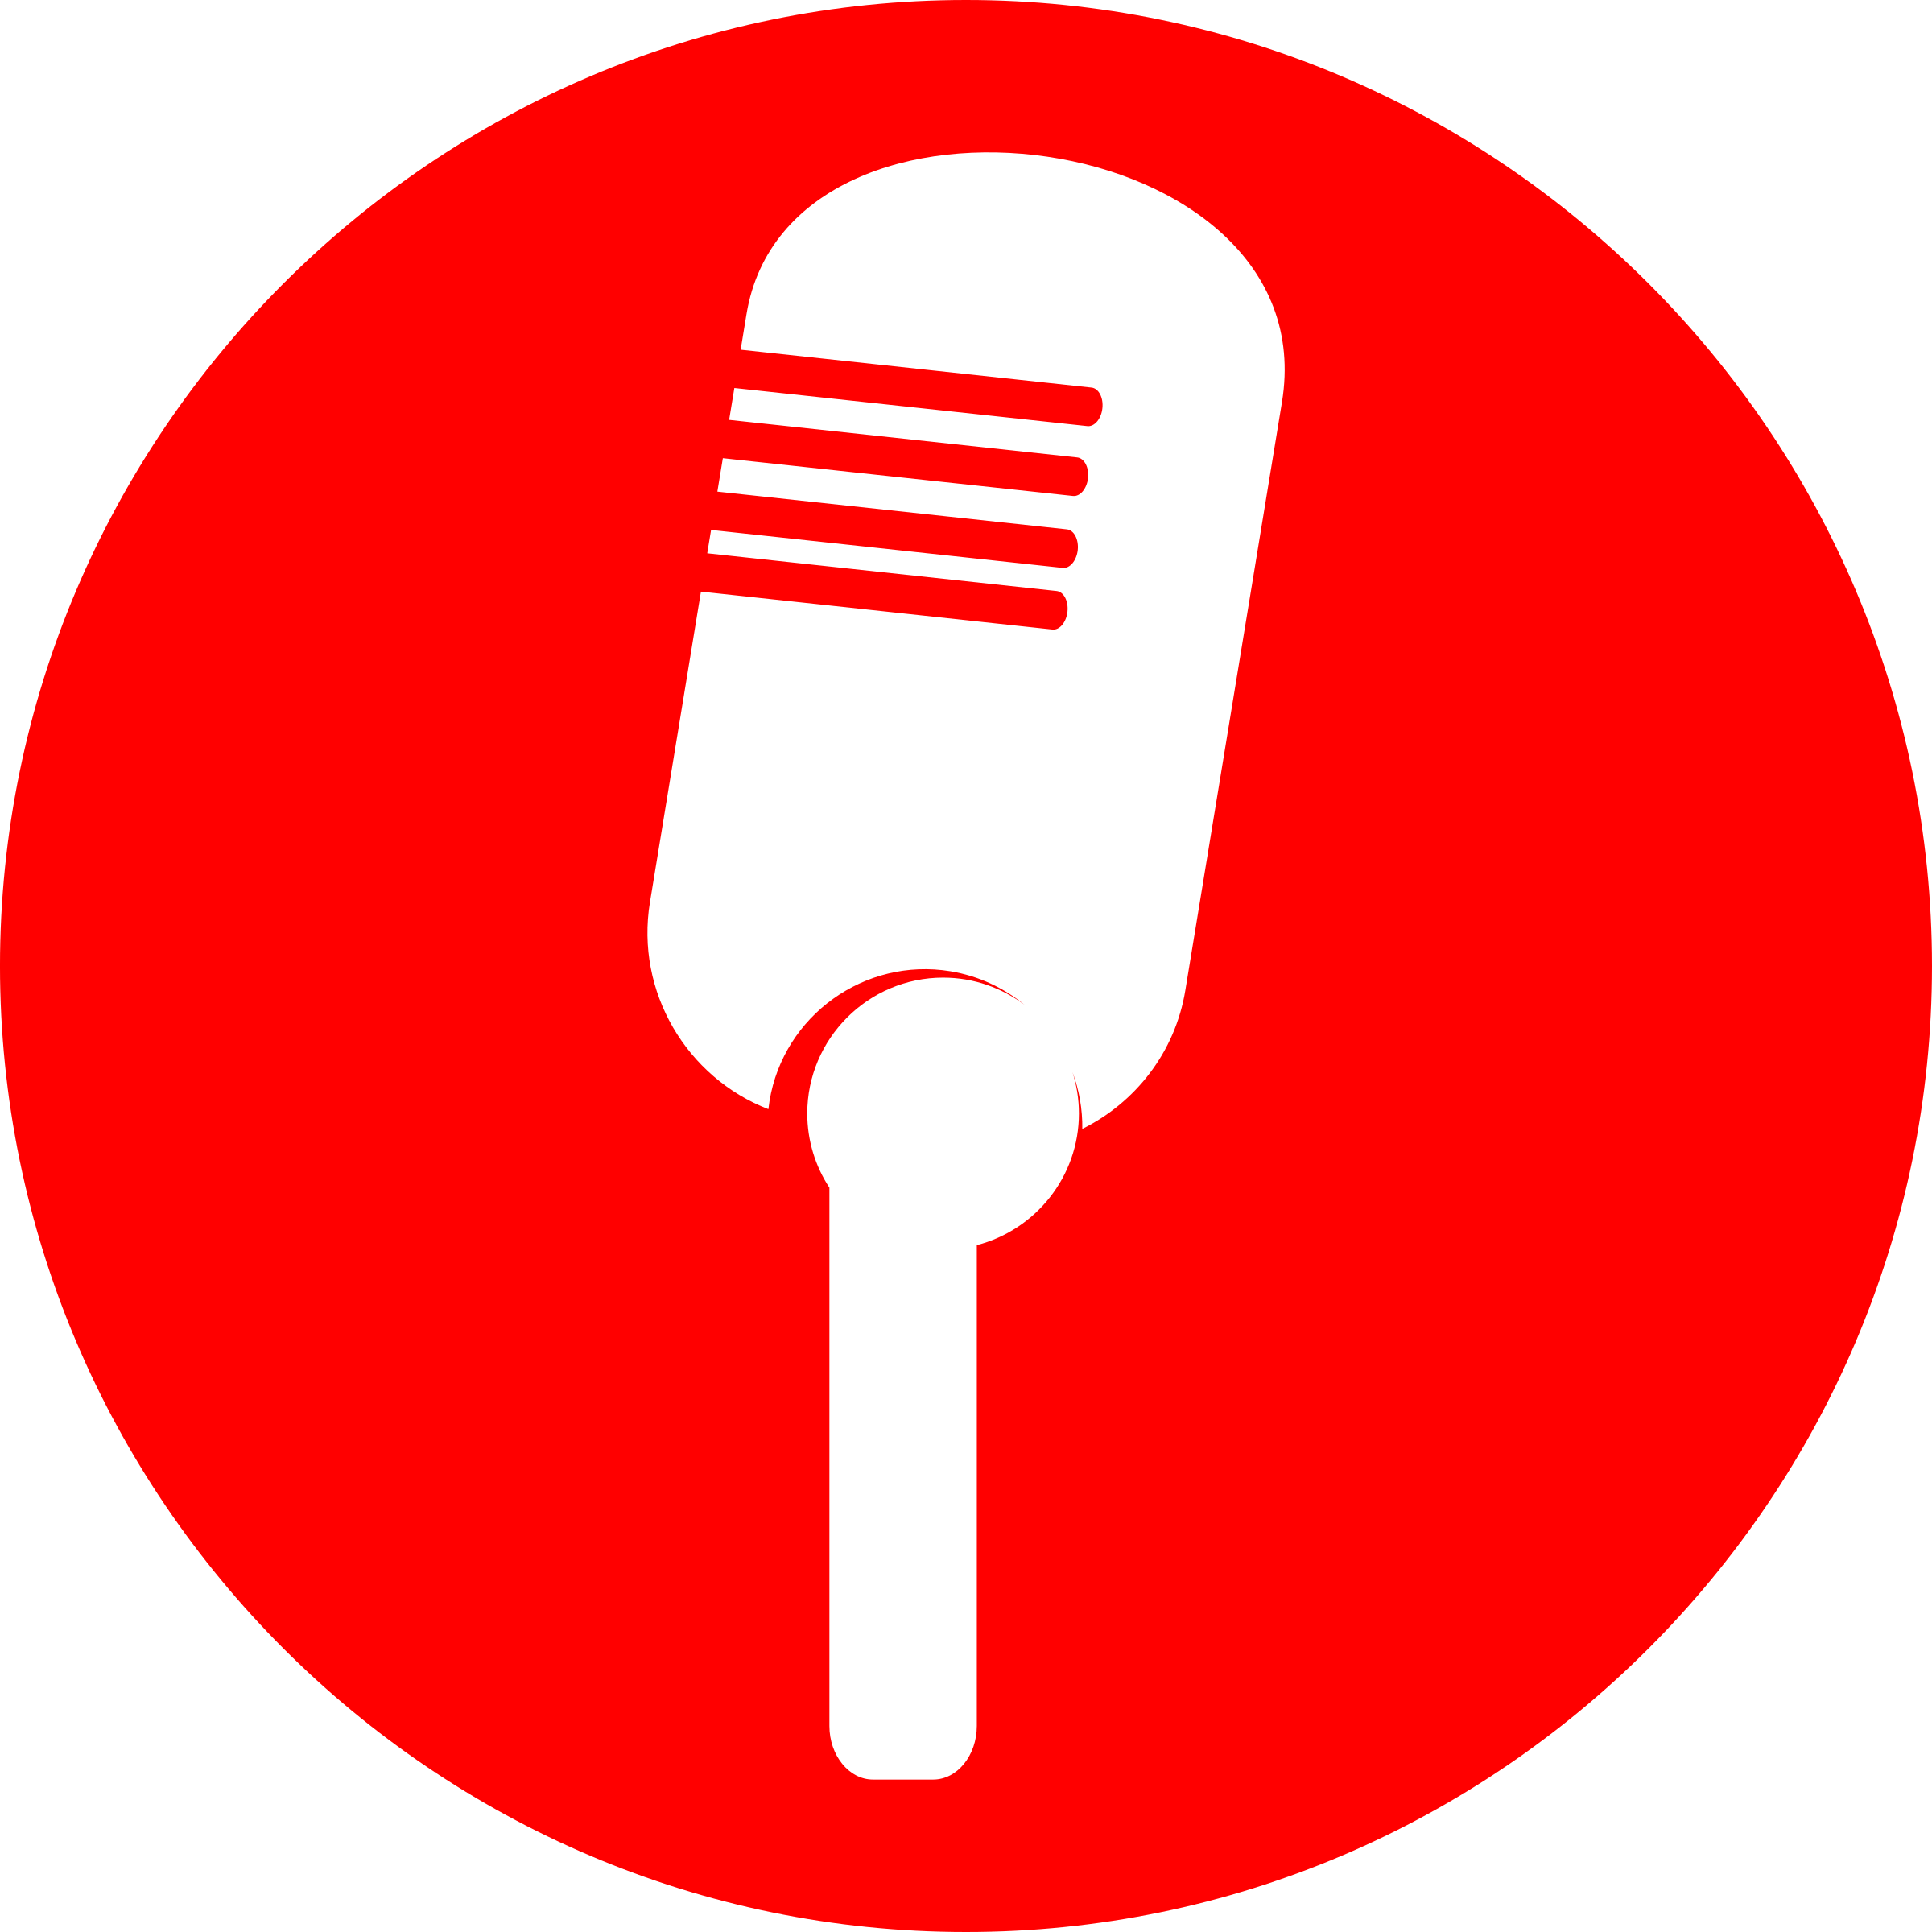 Cao lanh bridge on. Podium clipart microphone